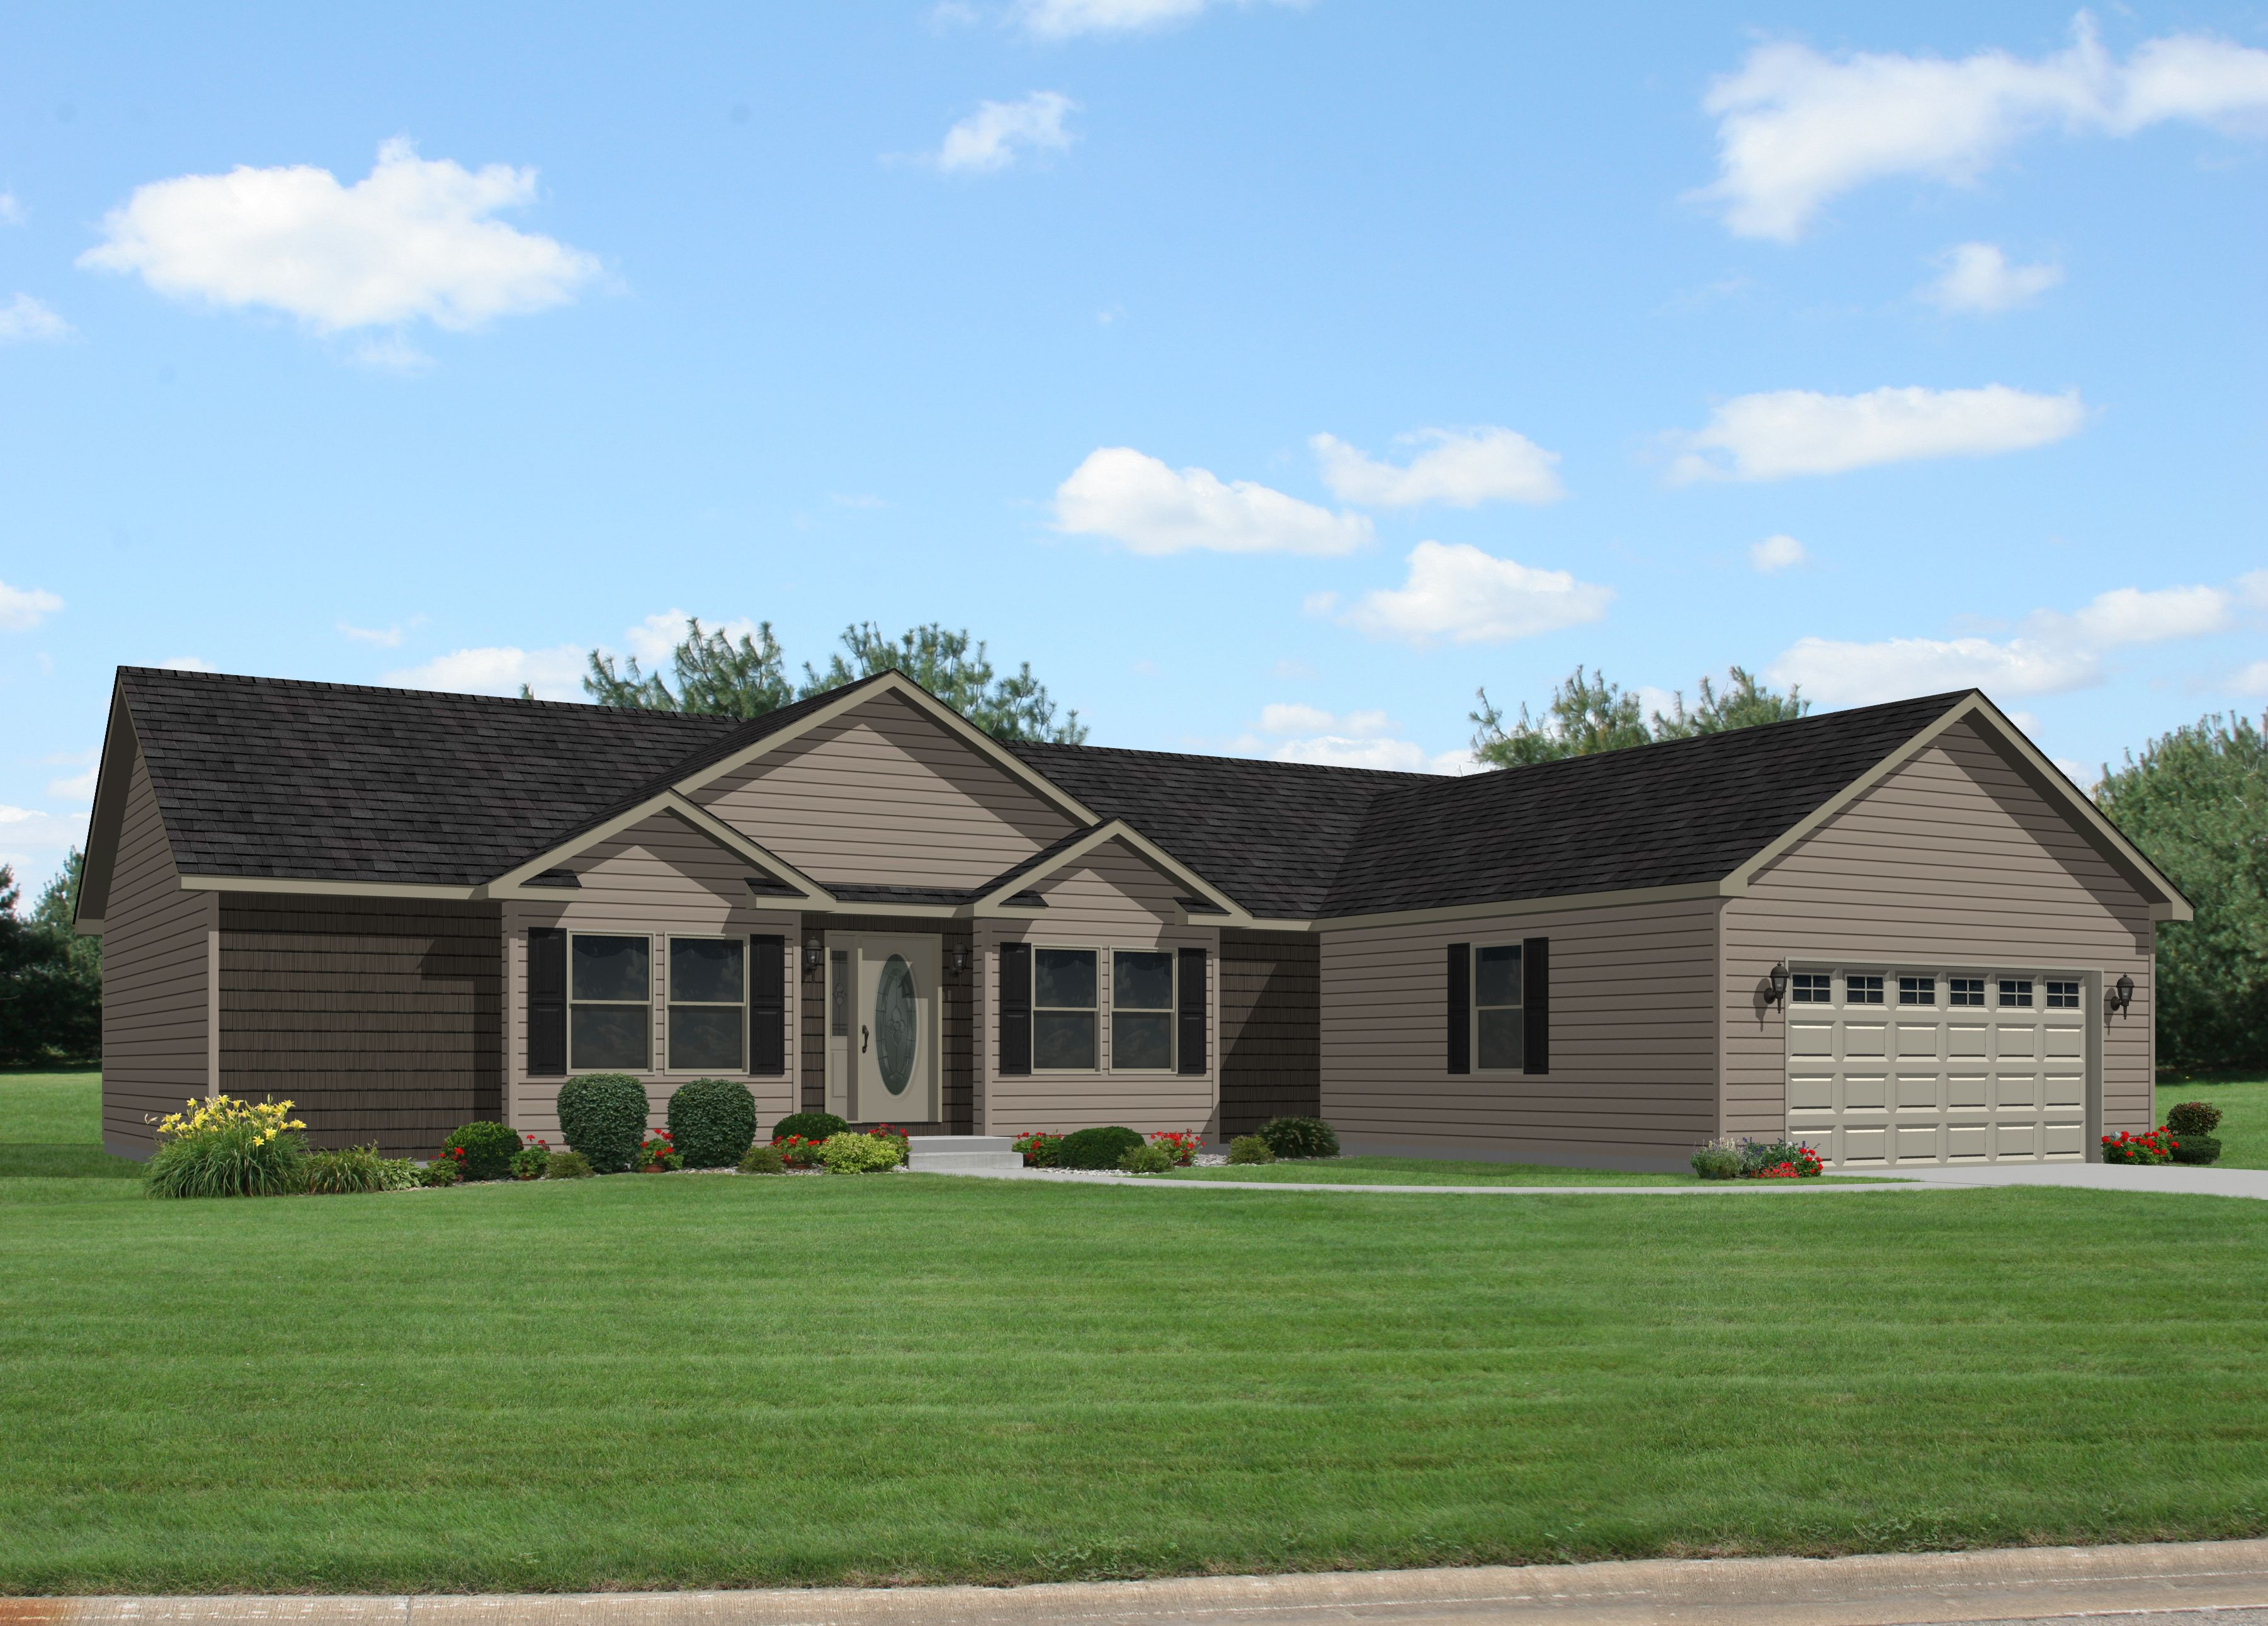 Oakdale iii rg749a commodore homes of indiana for House builders in indiana